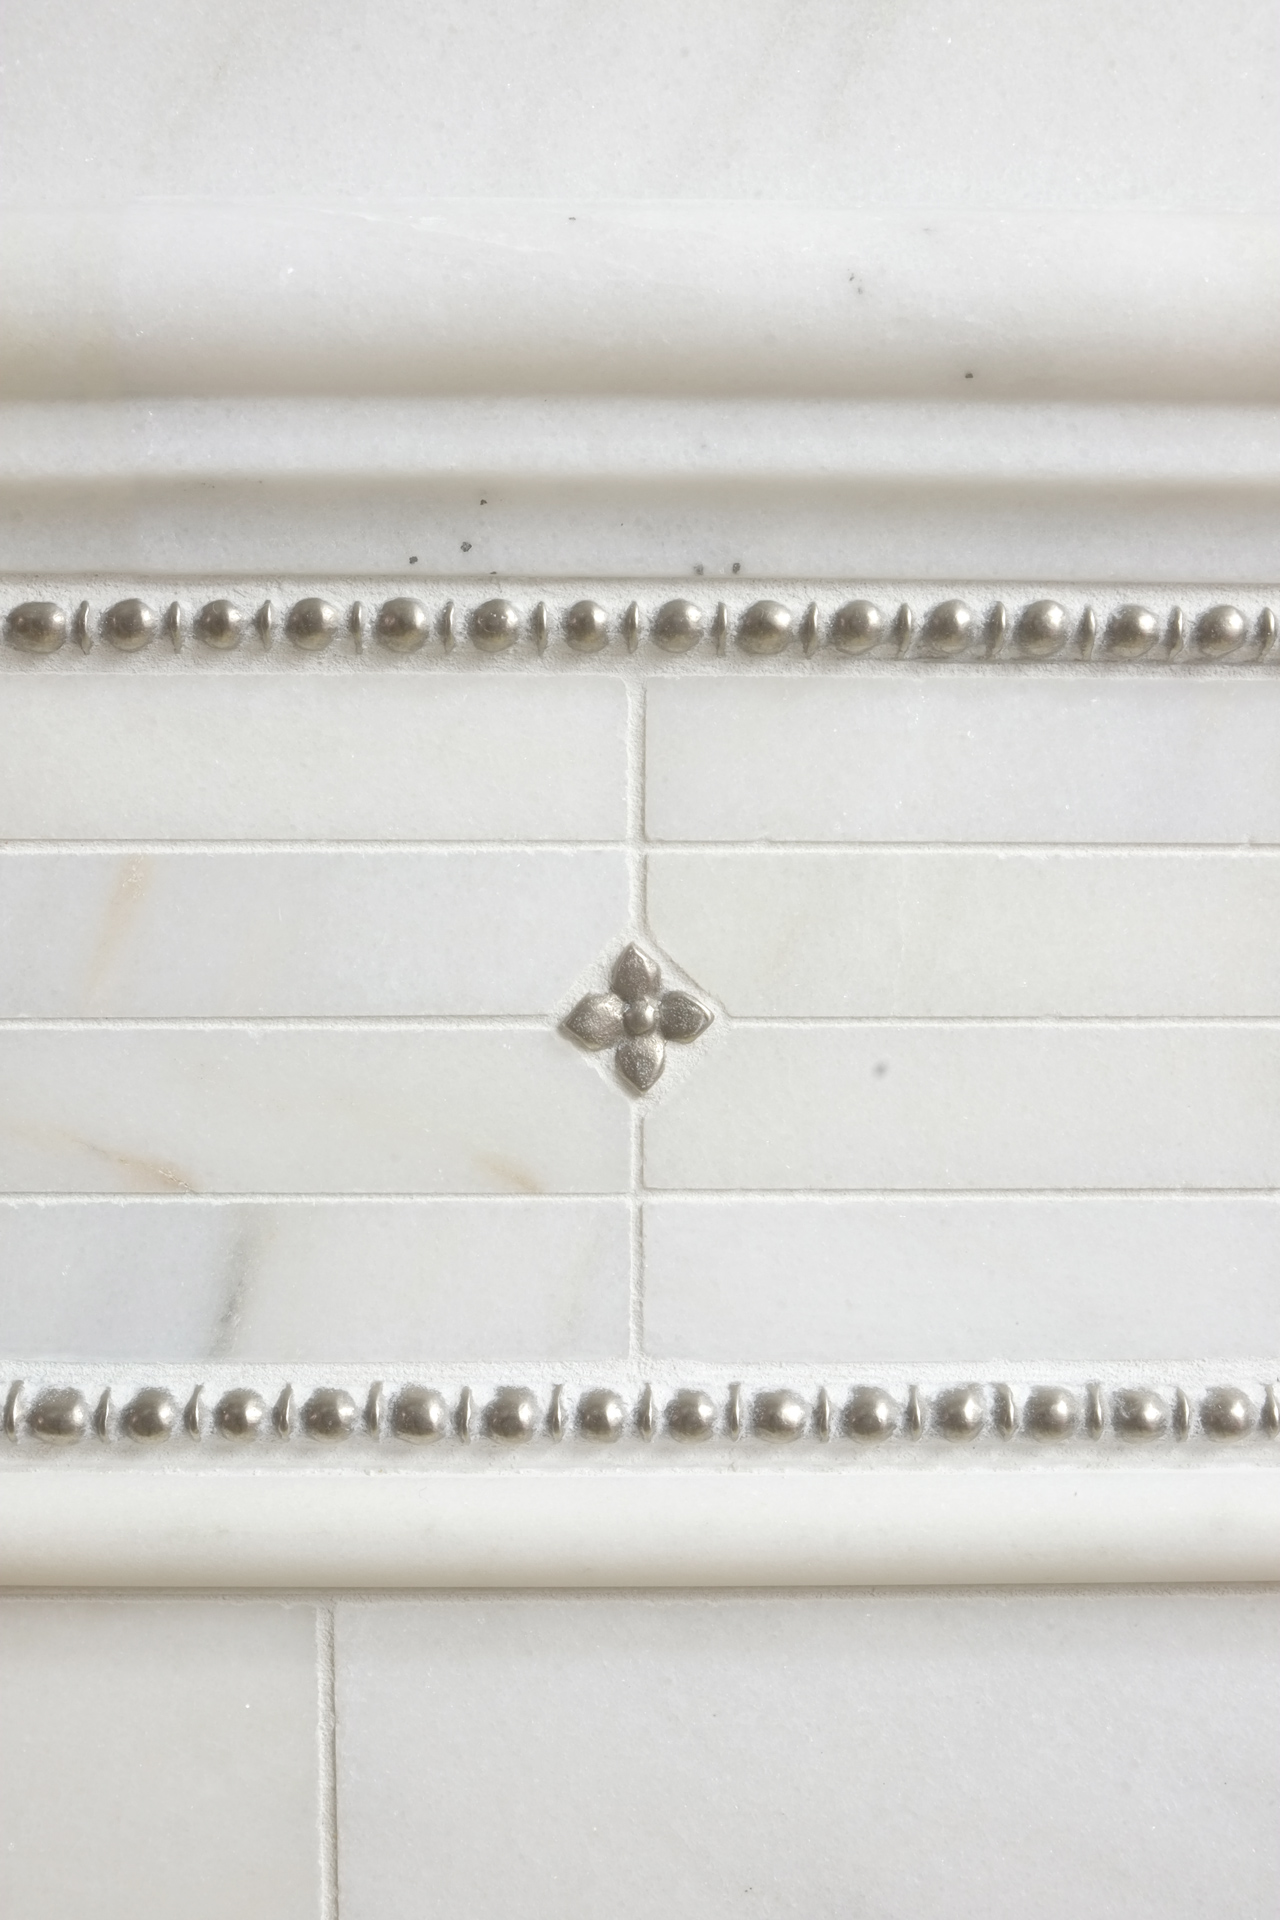 Metal accent tiles and liners: Roman Liner and Blooming Leaf in White Bronze with marble